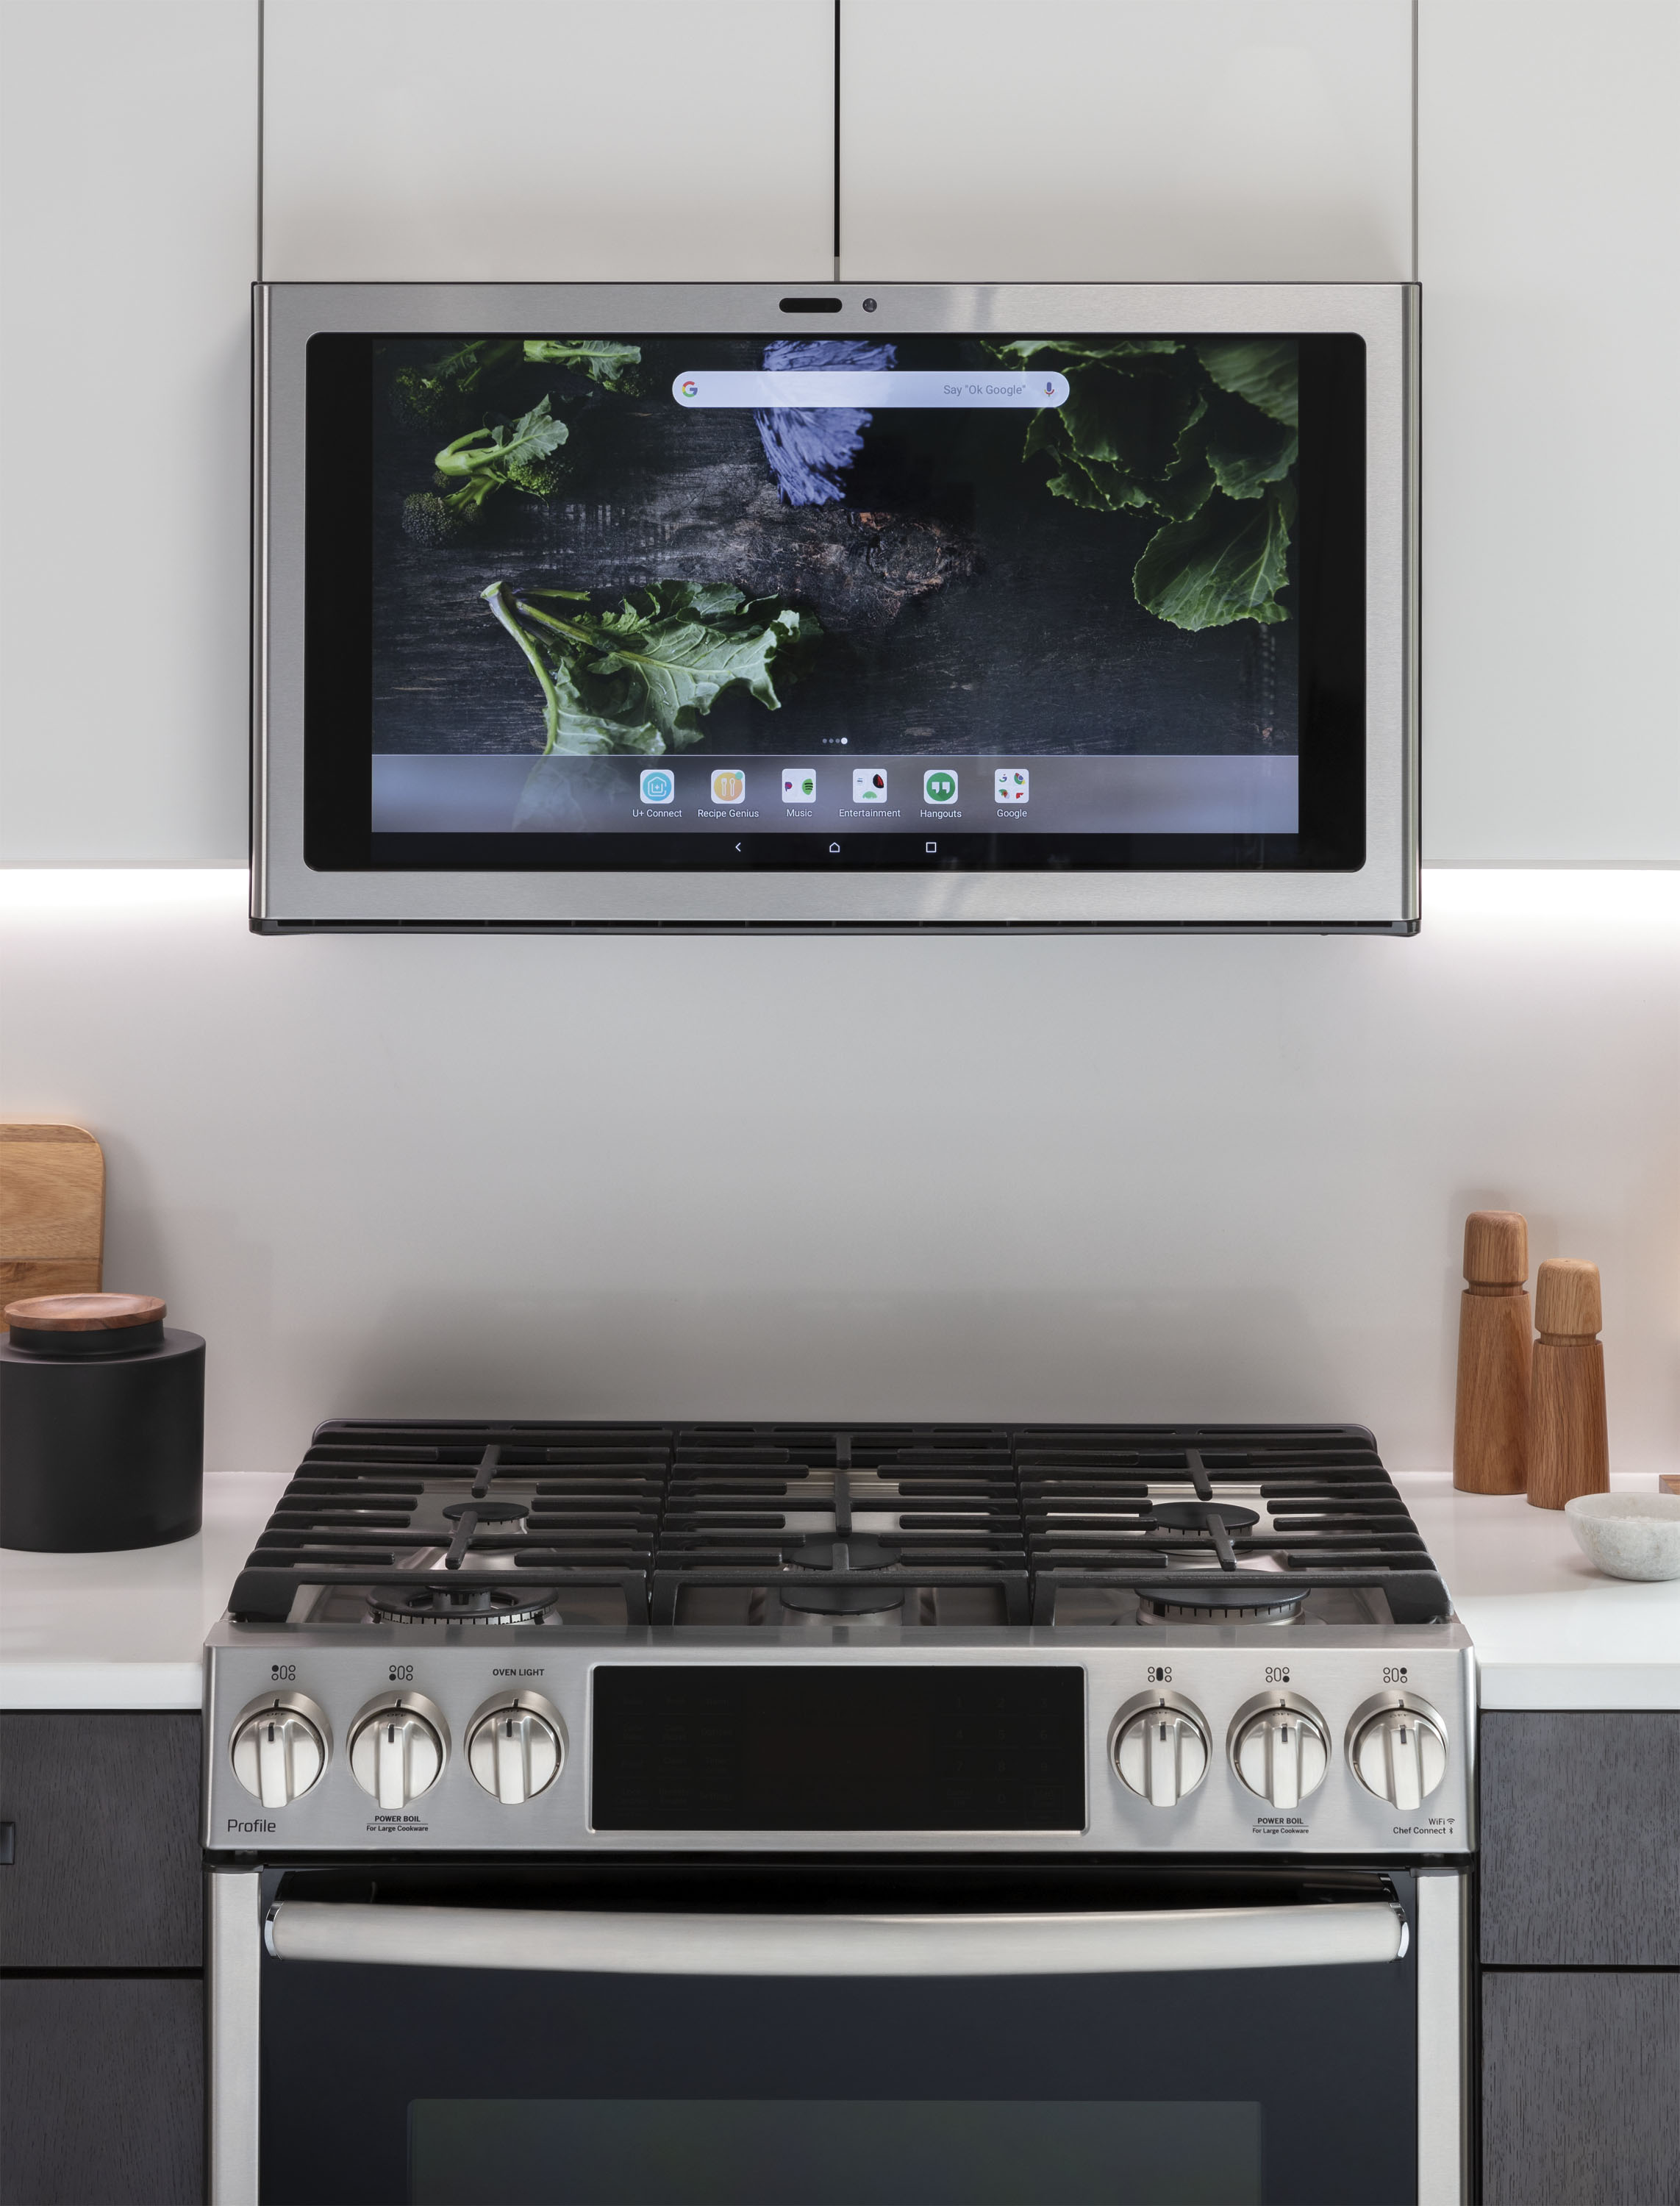 Ge Kitchen Hub A Smart Display For Above Your Stove That Streams Netflix And Spotify The Verge